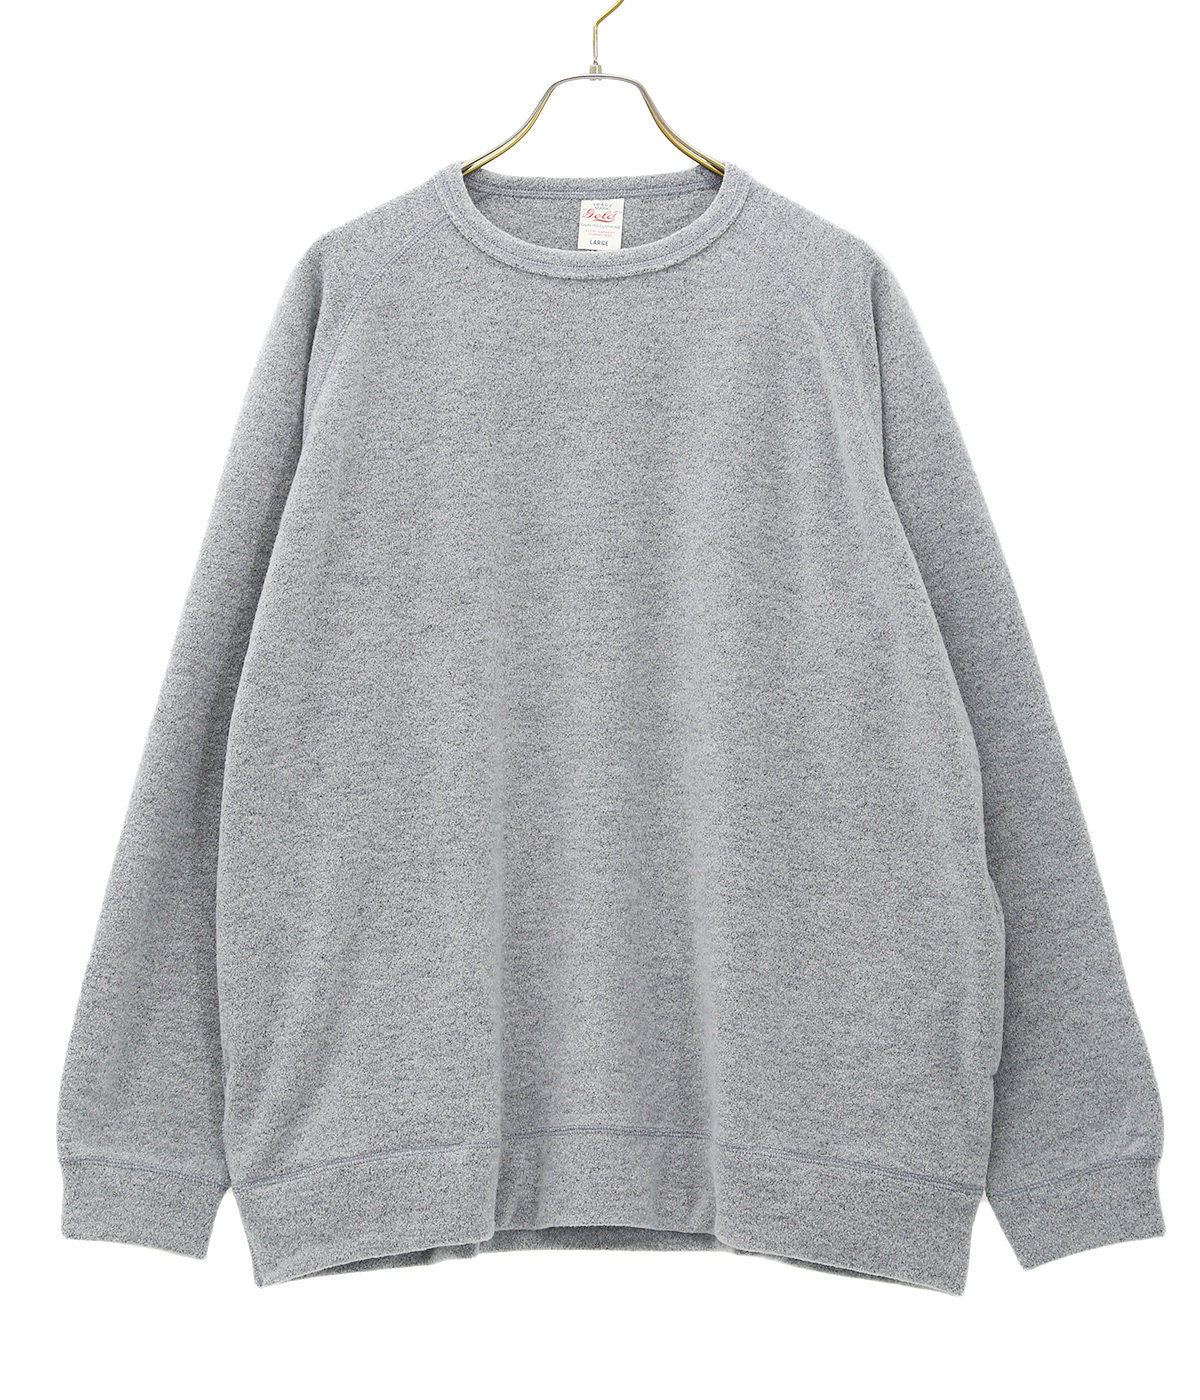 LIGHT WEIGHT BOUCLE WOOL KNIT RAGLAN CREW NECK